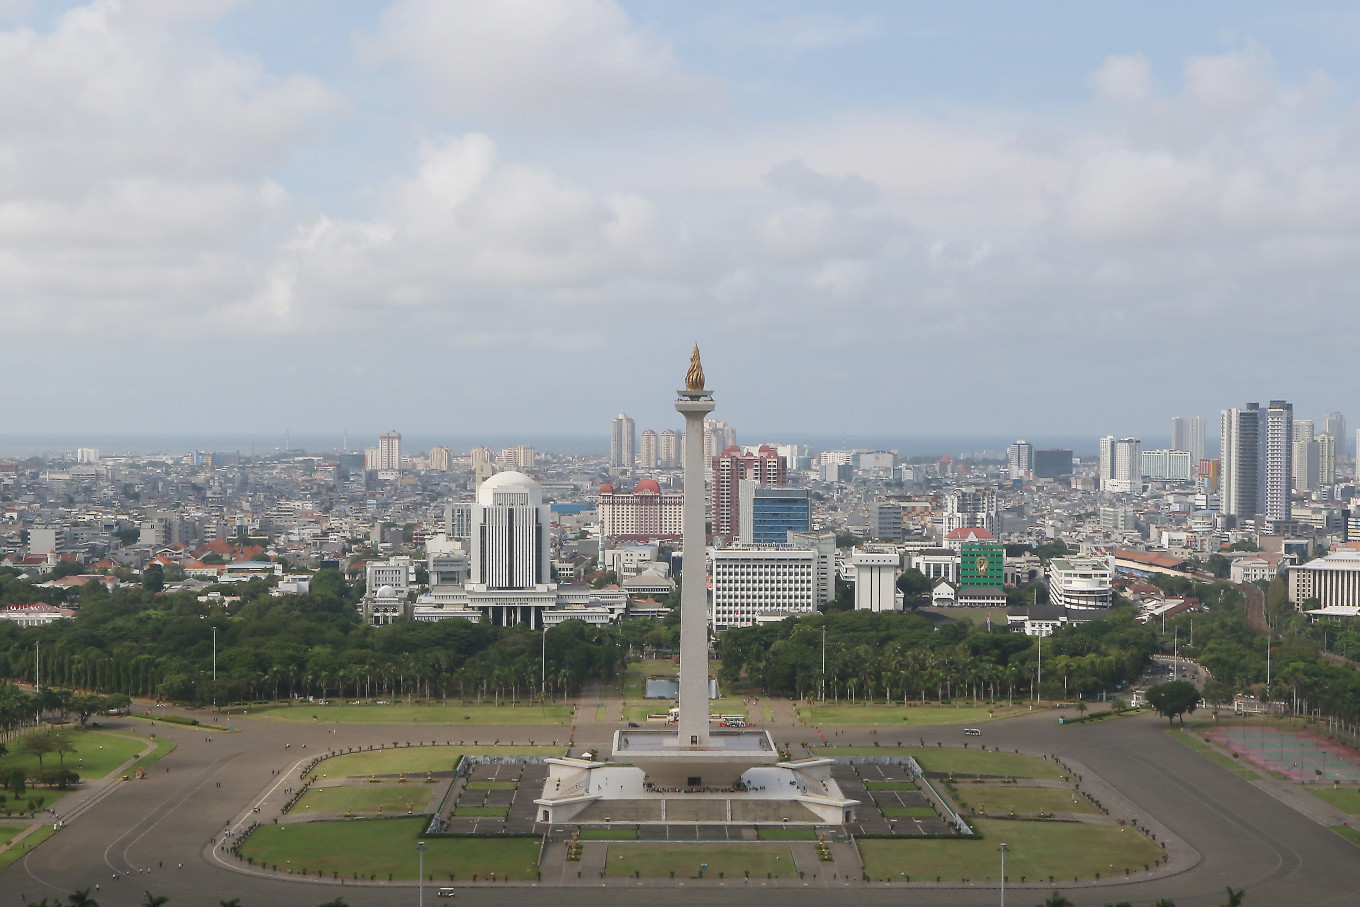 Monas not available for Indonesia's first Formula E race: State Secretariat